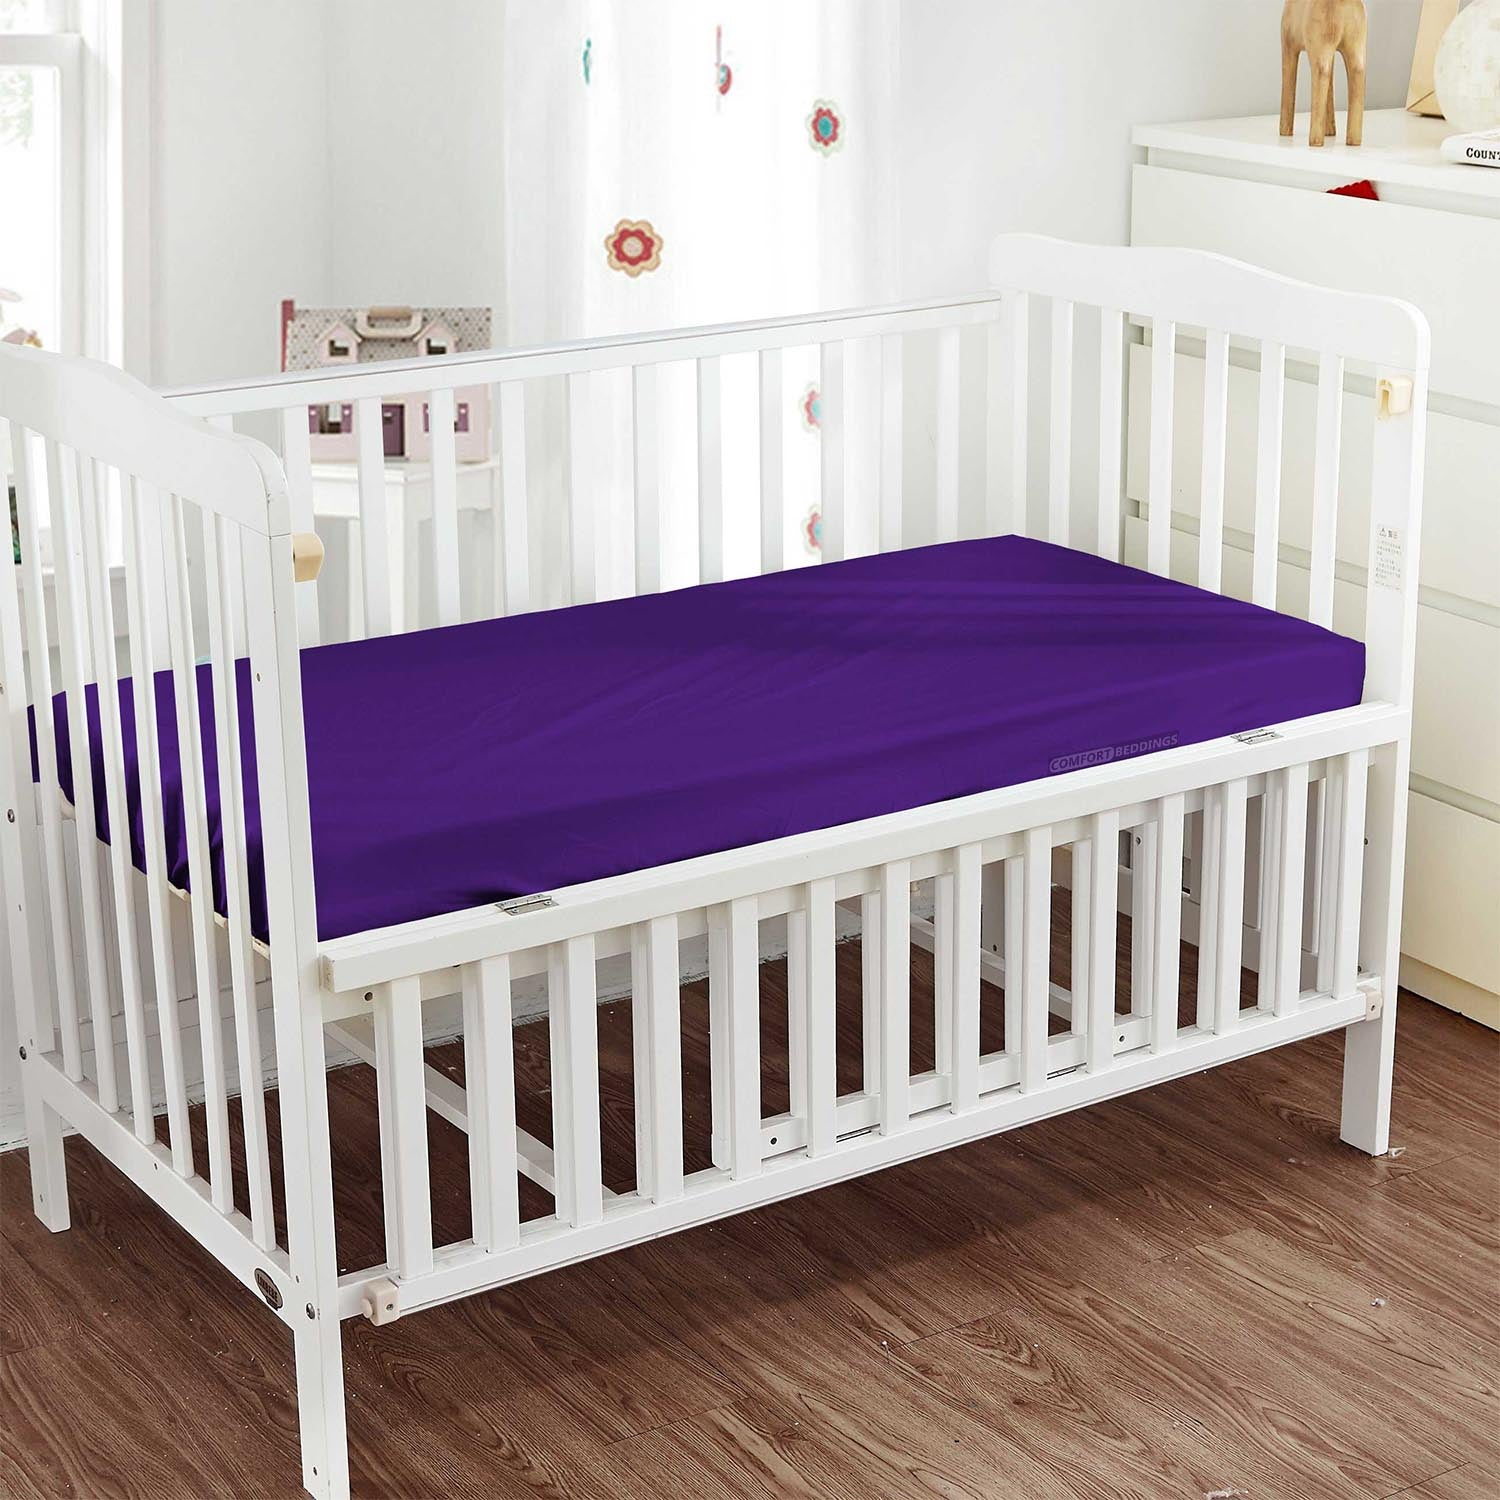 600TC Purple Fitted Crib Sheets